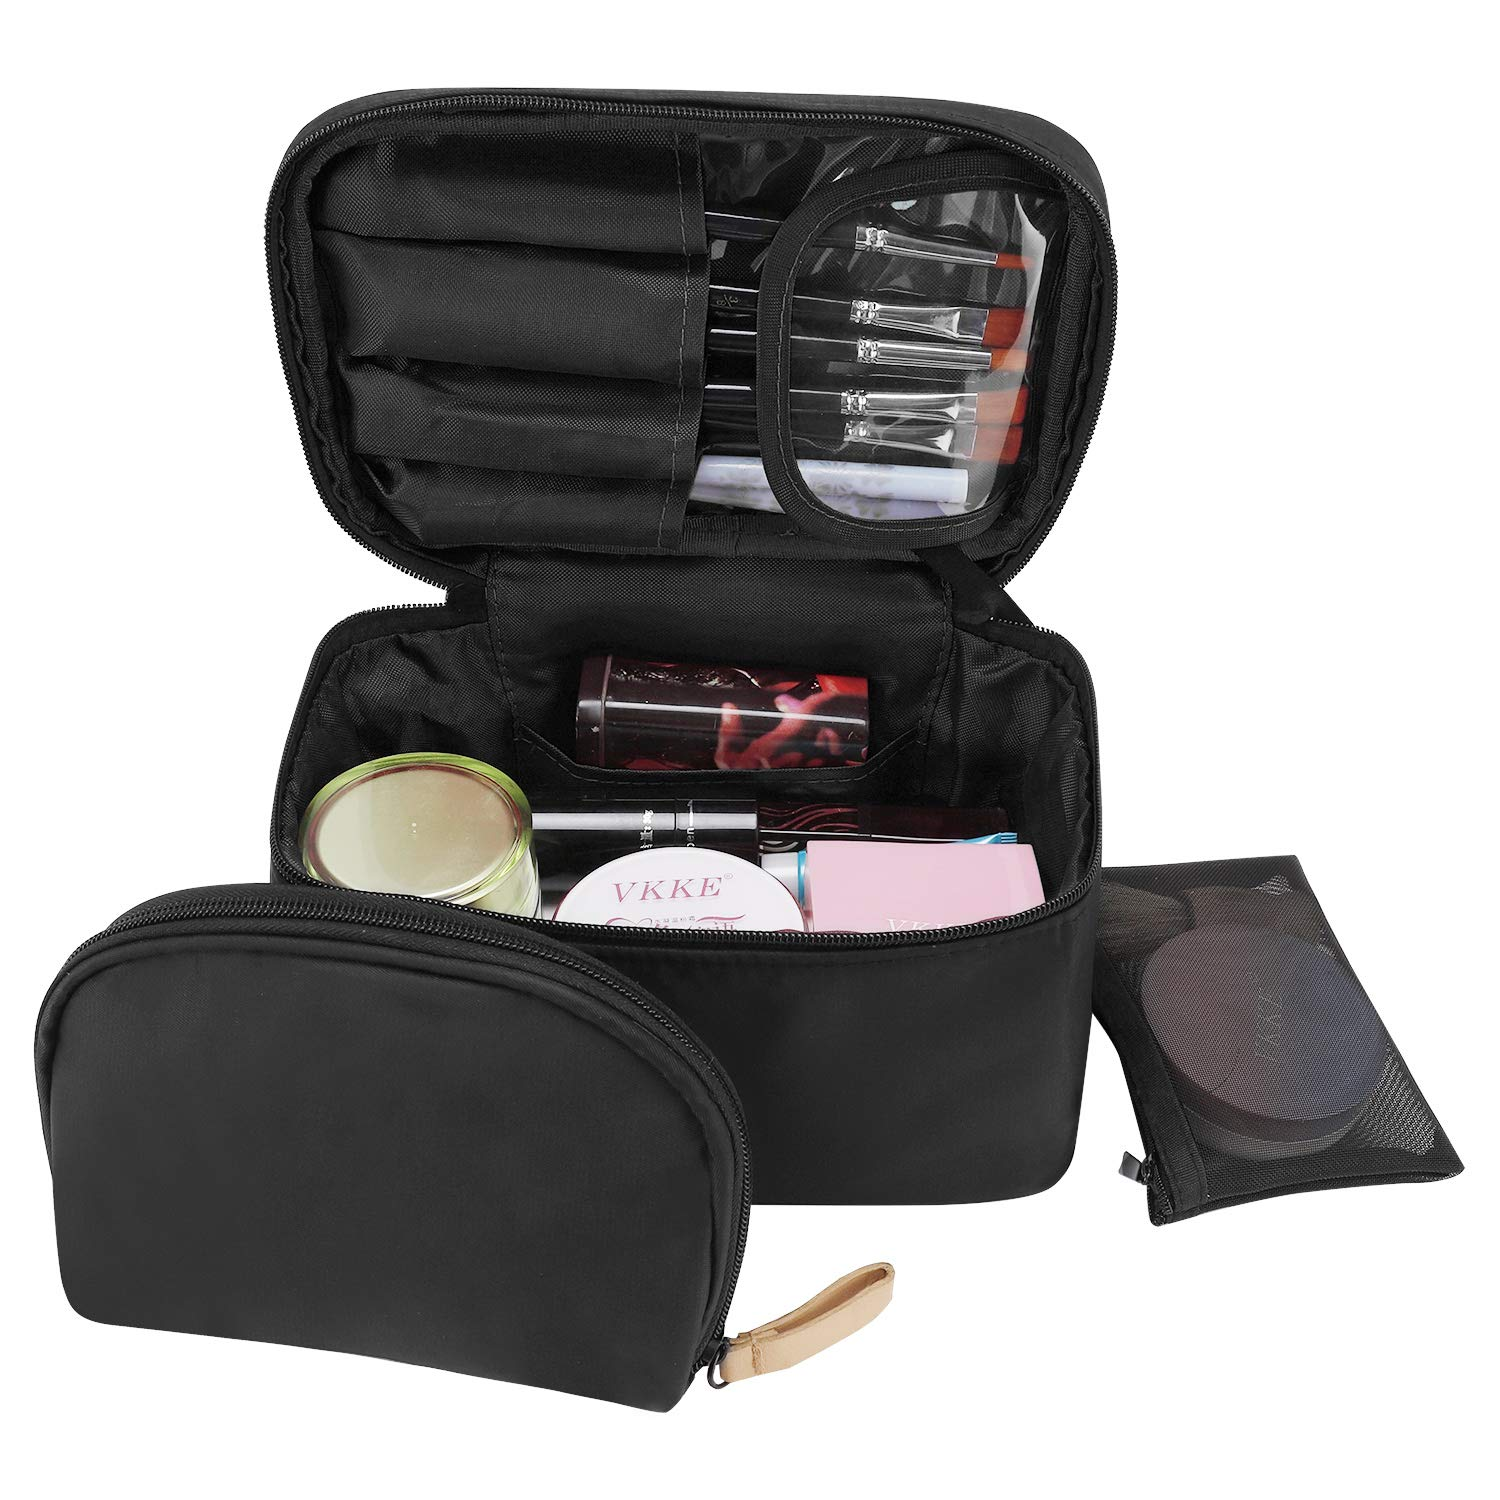 Amazon.com : Travel Makeup Bag, wllife Makeup Bag Organizer Cosmetic Makeup Bags for Women Make Up Cosmetic Bag Case with Brush Holder-Bonus Cosmetic Pouch ...